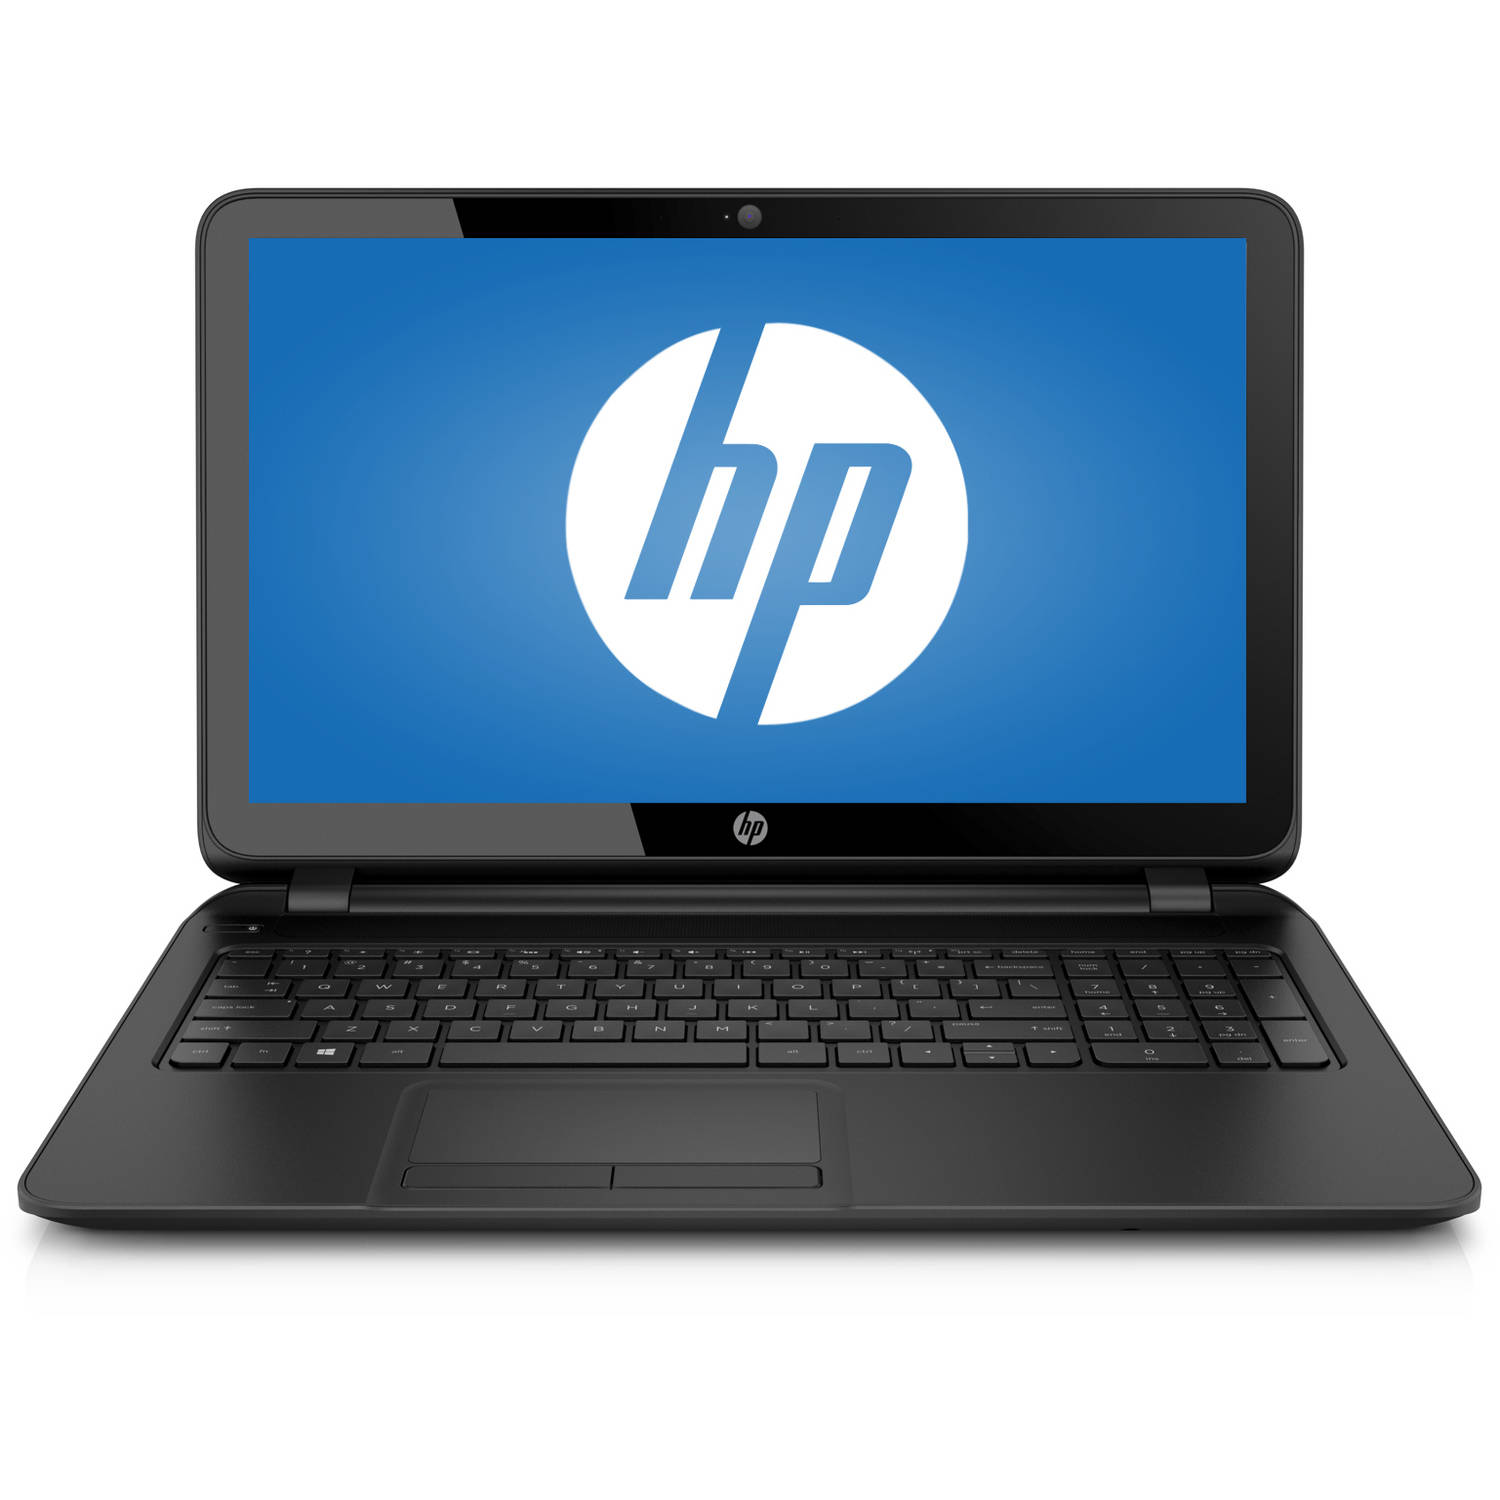 "HP Black 15.6"" 15-f024wm Laptop PC with Intel Pentium N3530 Processor, 4GB Memory, Touchscreen, 500GB Hard Drive and Windows 8.1 (Eligible for Free Windows 10 Upgrade)"